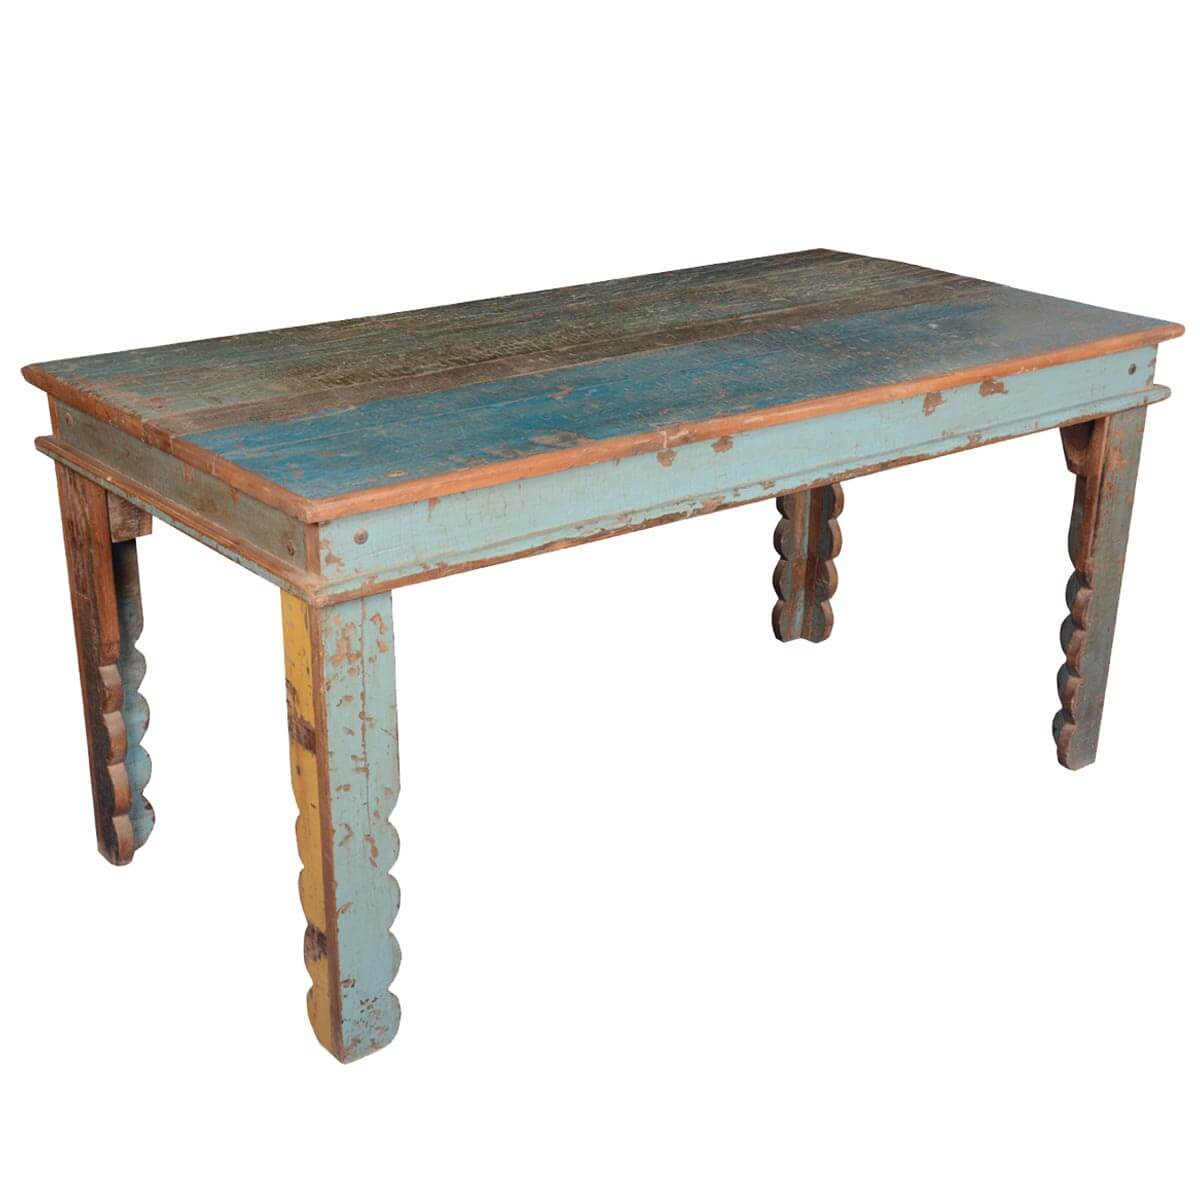 Large rustic pine kitchen table rustic kitchen designs for Reclaimed wood table designs